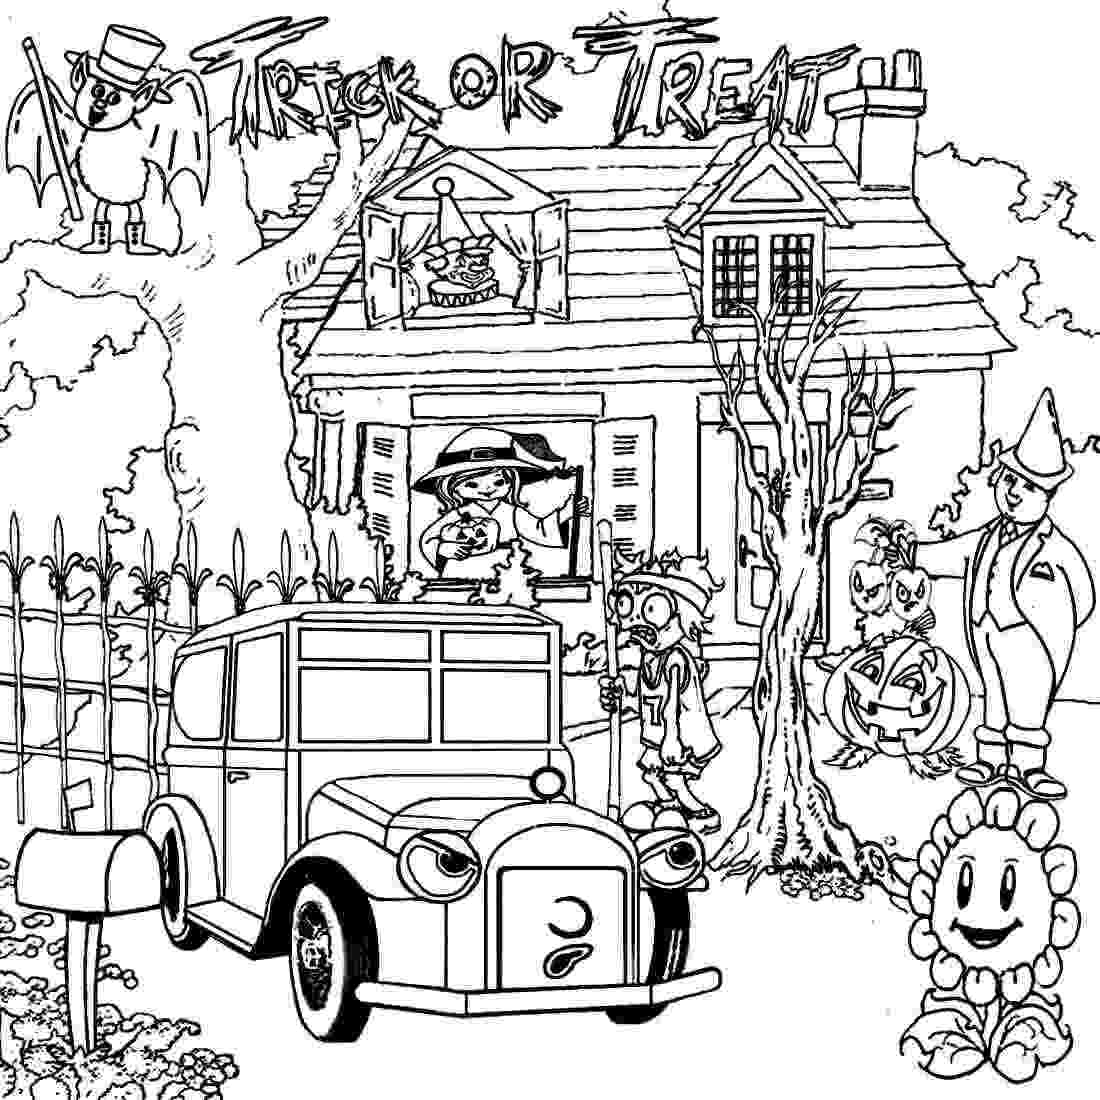 haunted house coloring pages free printable haunted house coloring pages for kids pages haunted house coloring